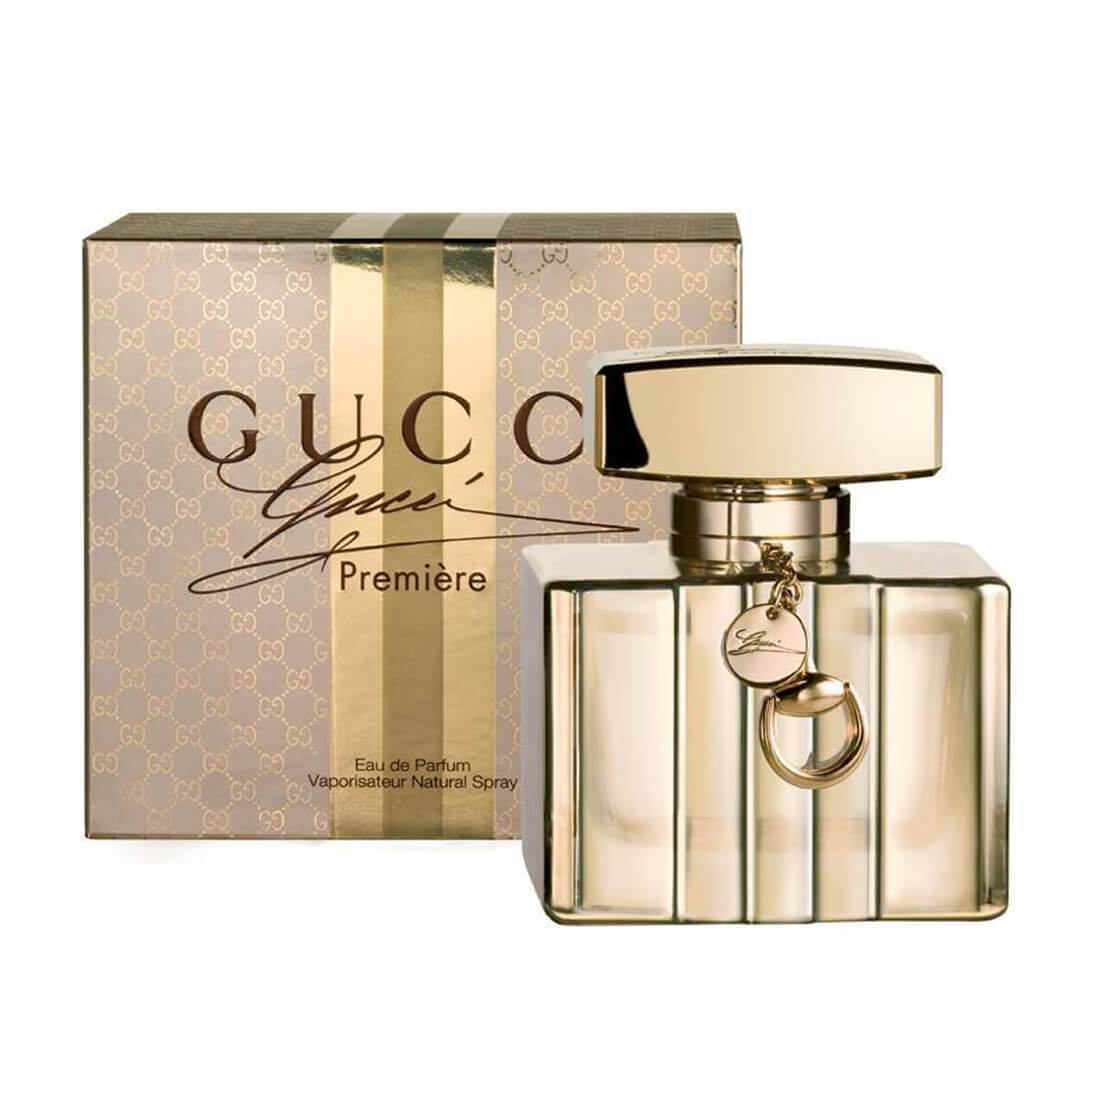 Gucci Premiere EDP Perfume For Women